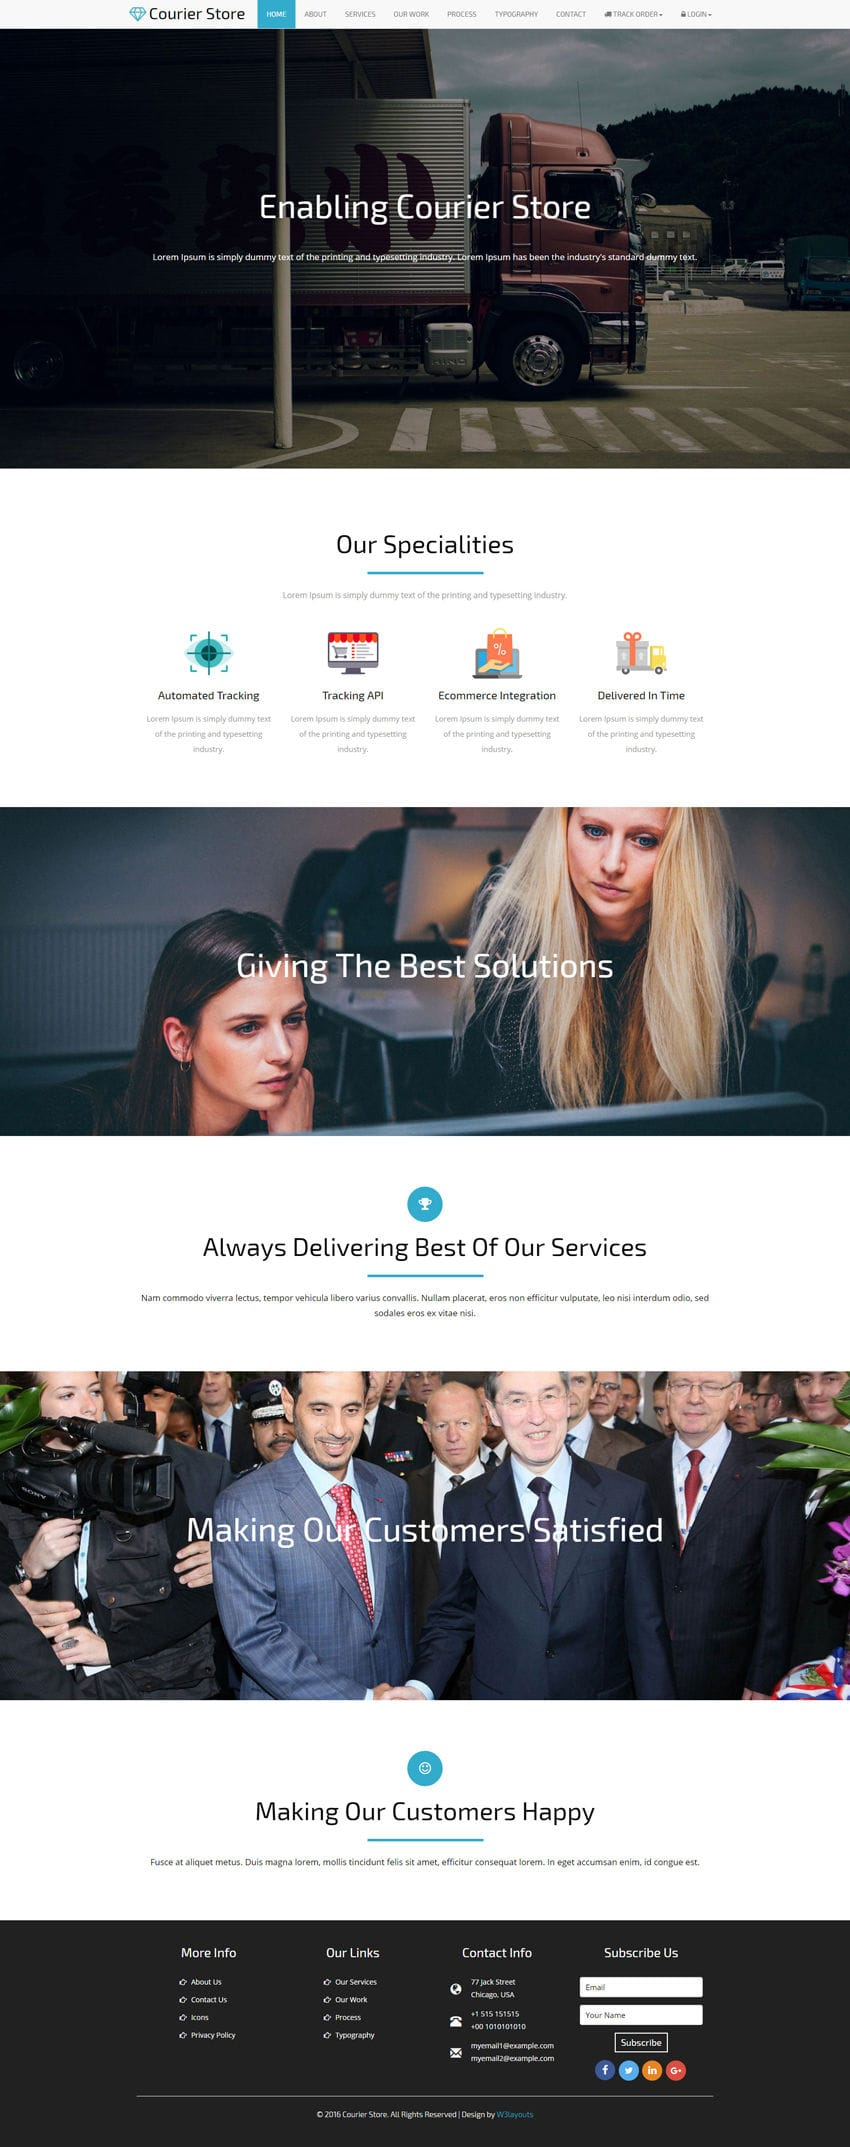 Courier Store a Corporate Business Bootstrap Responsive Web Template